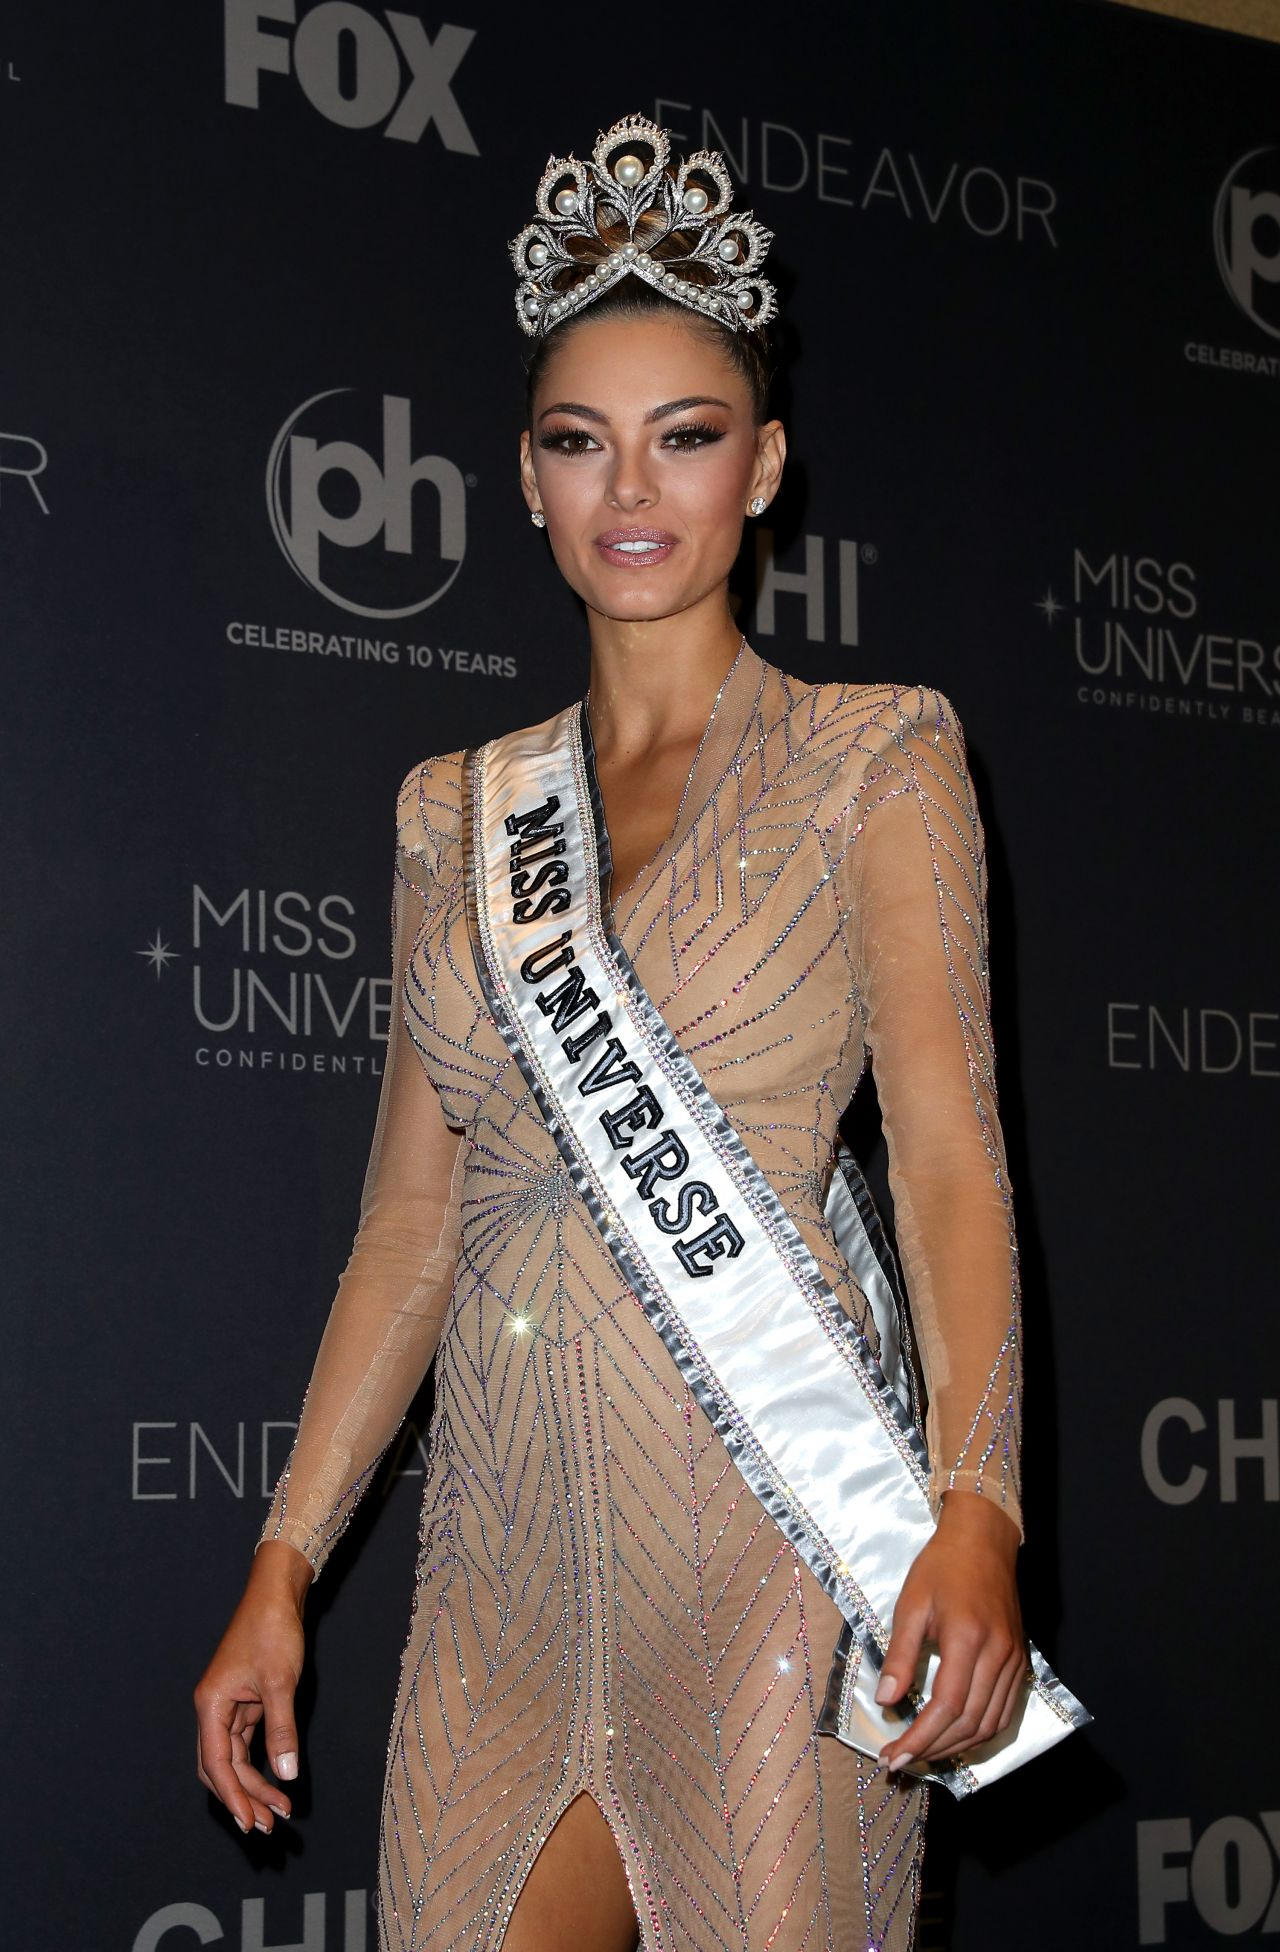 Miss Universe 2018 Name >> Demi-Leigh Nel-Peters – Miss Universe 2017 in Las Vegas